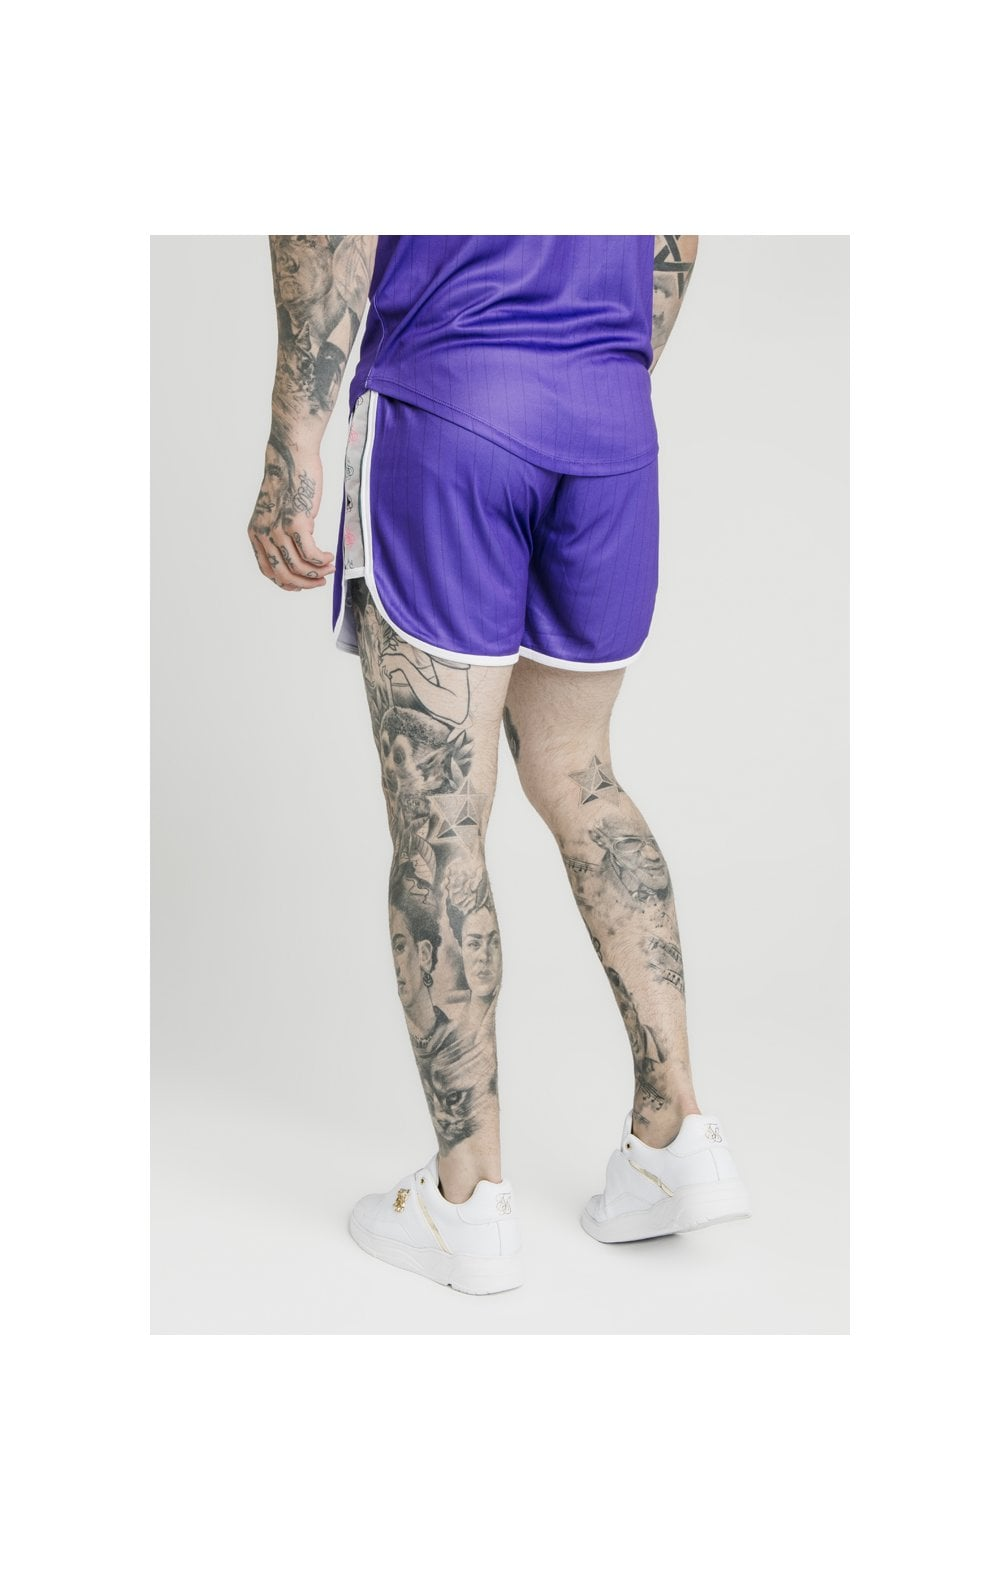 Load image into Gallery viewer, SikSilk Tape Trails Runner Shorts – Purple (1)